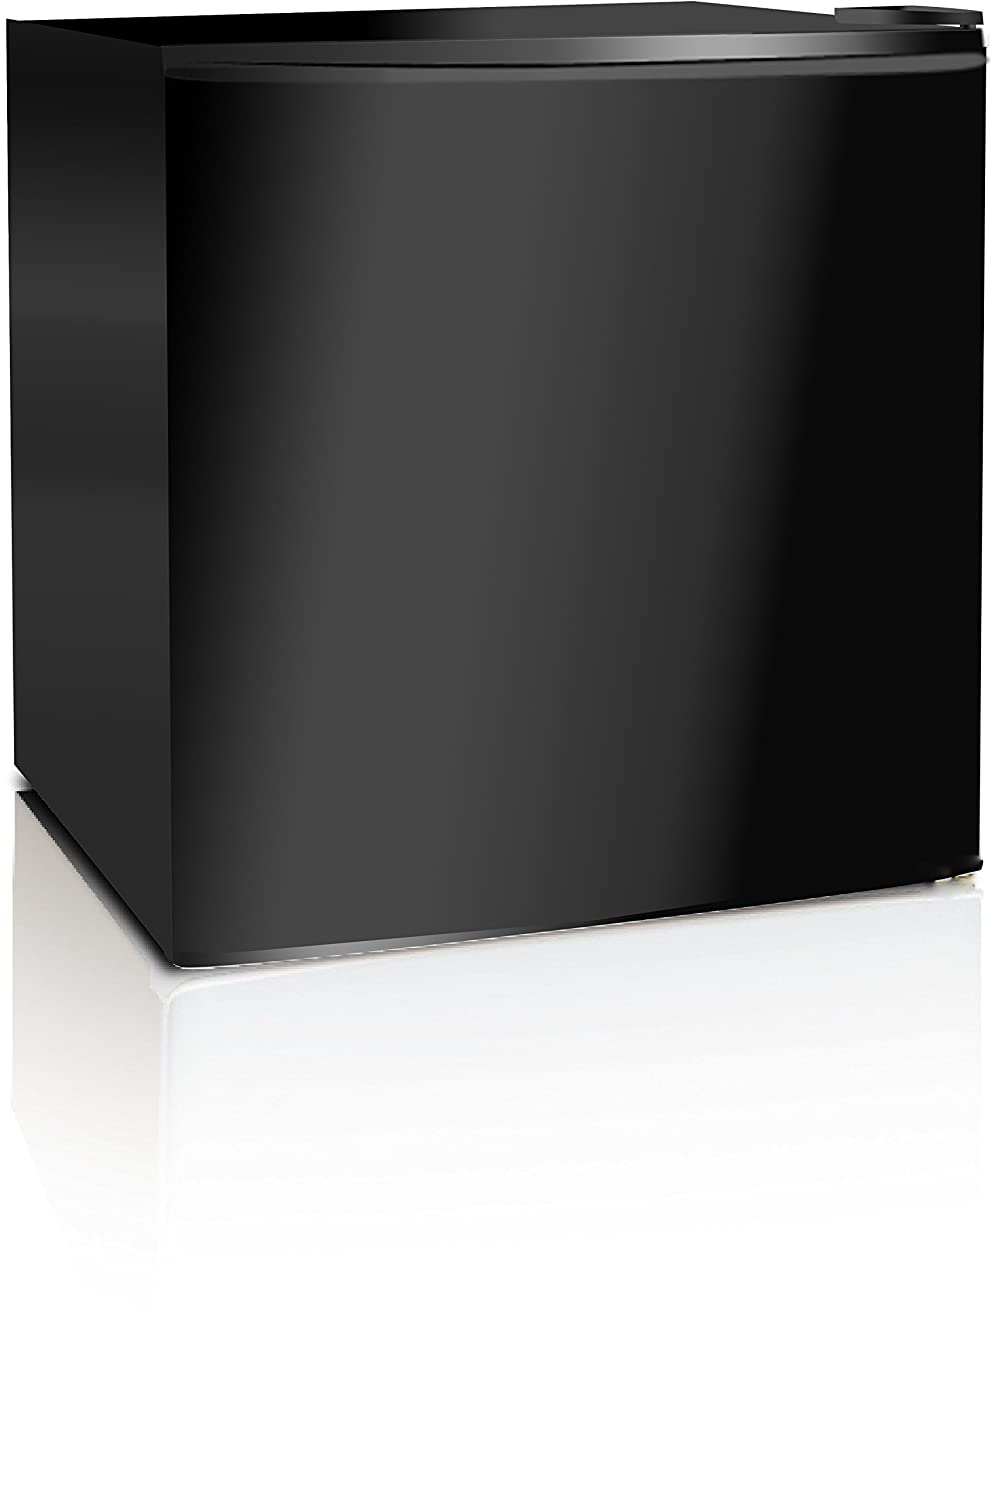 Top 10 Best Upright Freezers (2020 Reviews & Buying Guide) 2